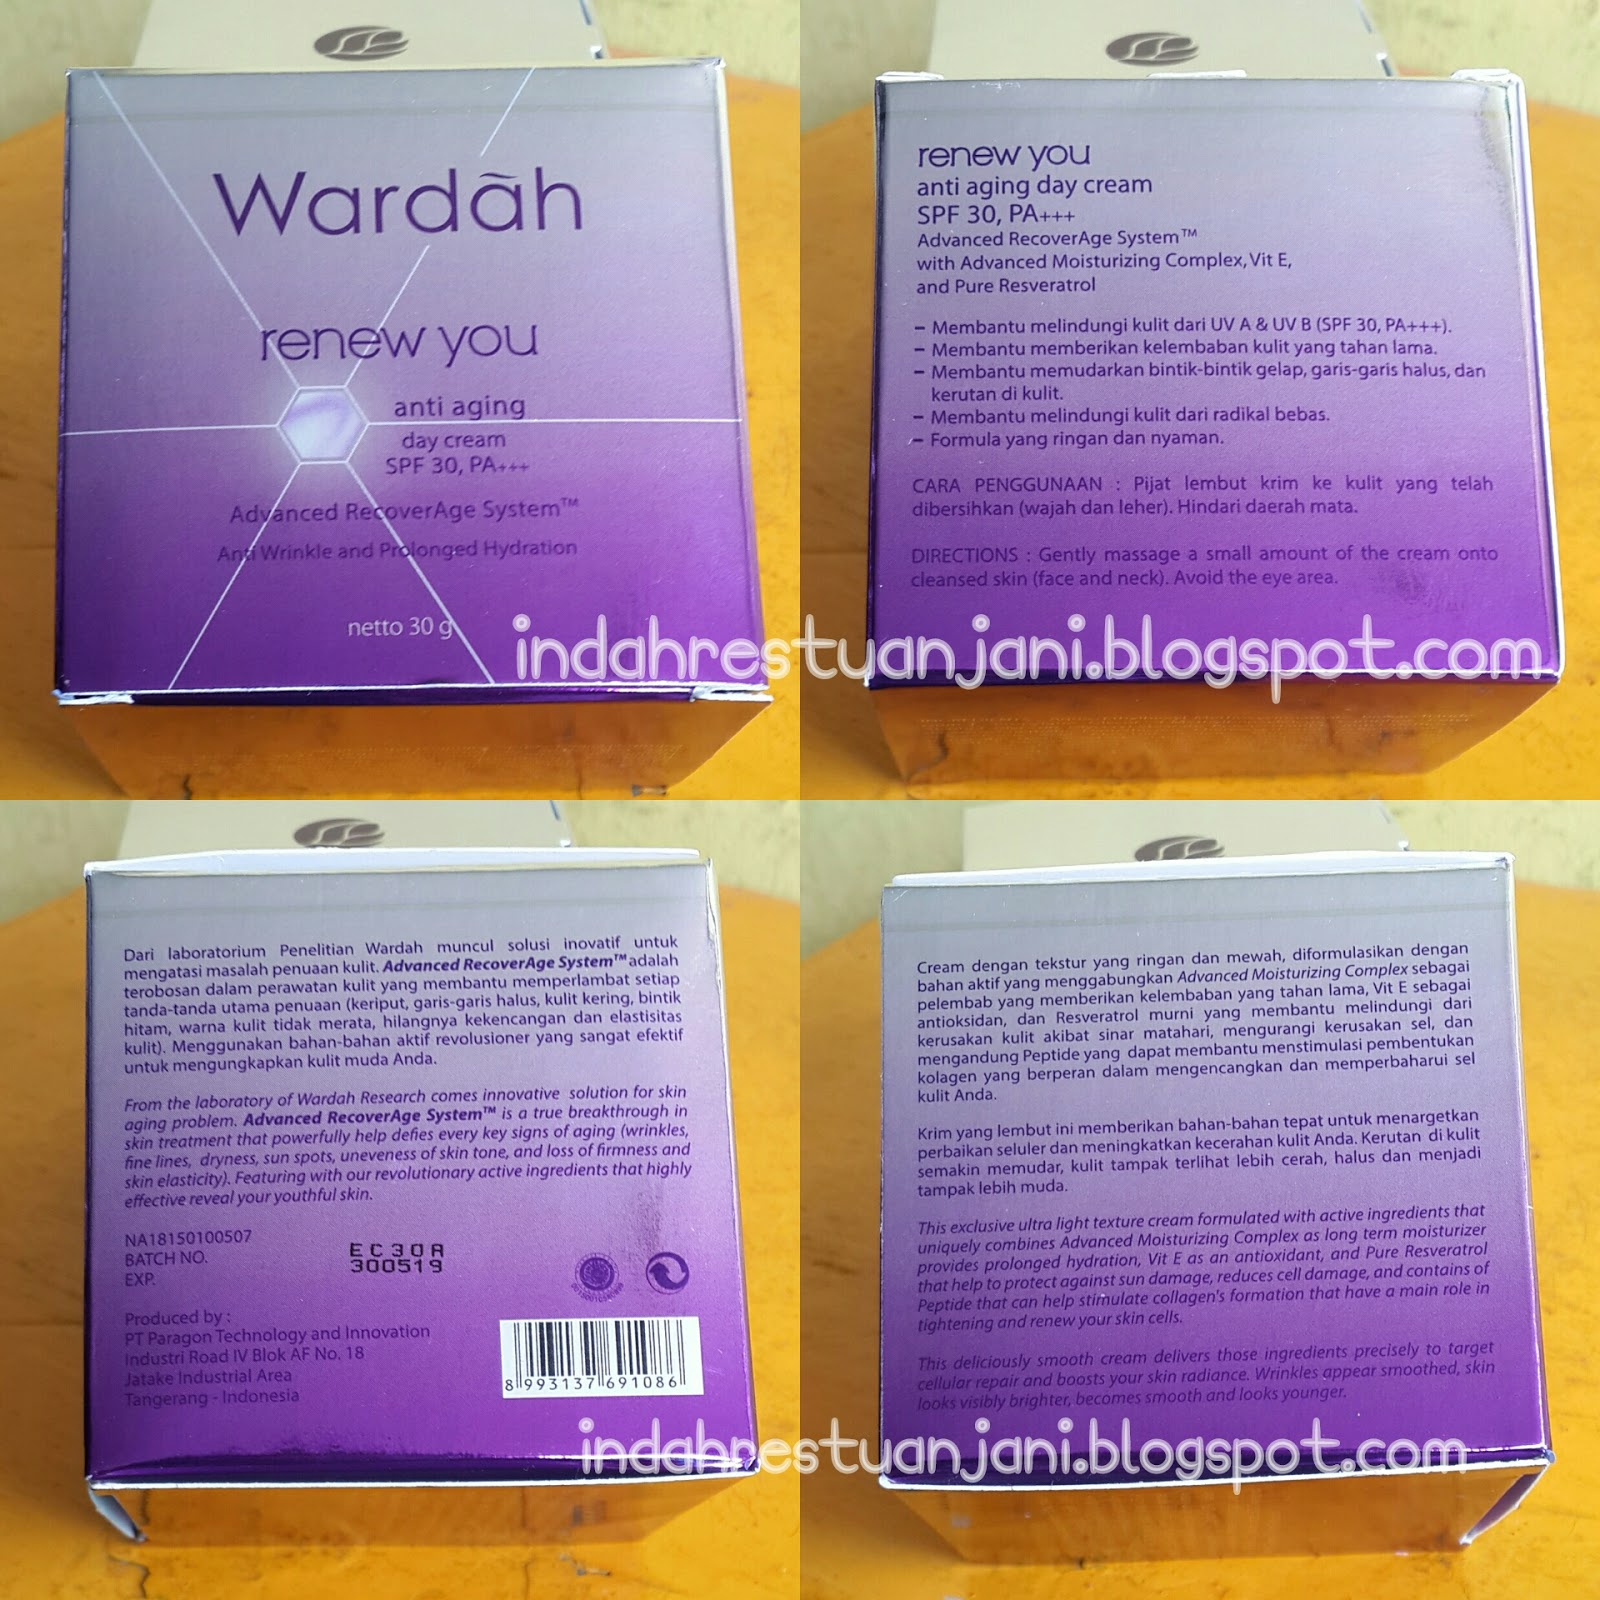 INGREDIENTS WARDAH RENEW YOU DAY CREAM